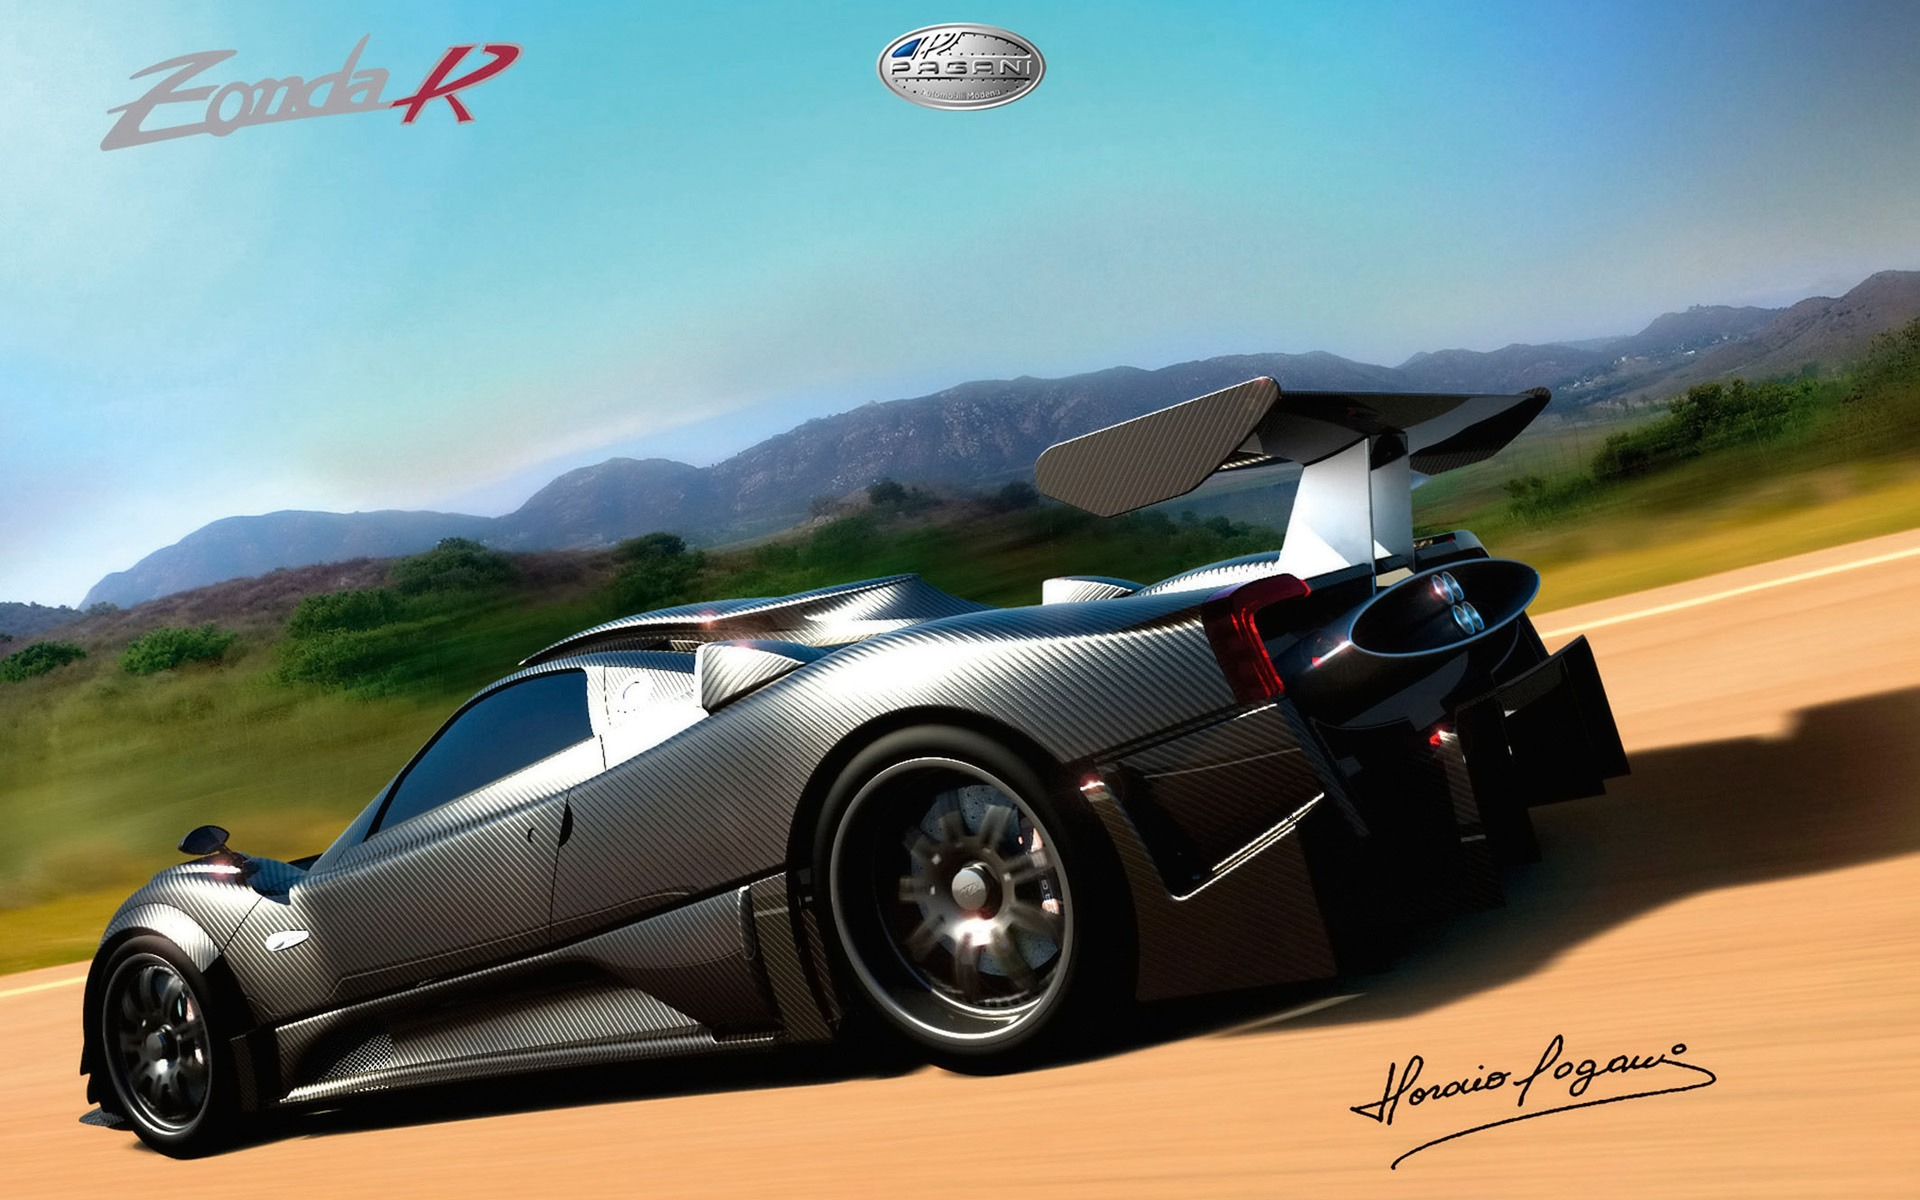 Pagani Zonda R Wallpaper Pagani Cars Wallpapers In Jpg Format For Free Download